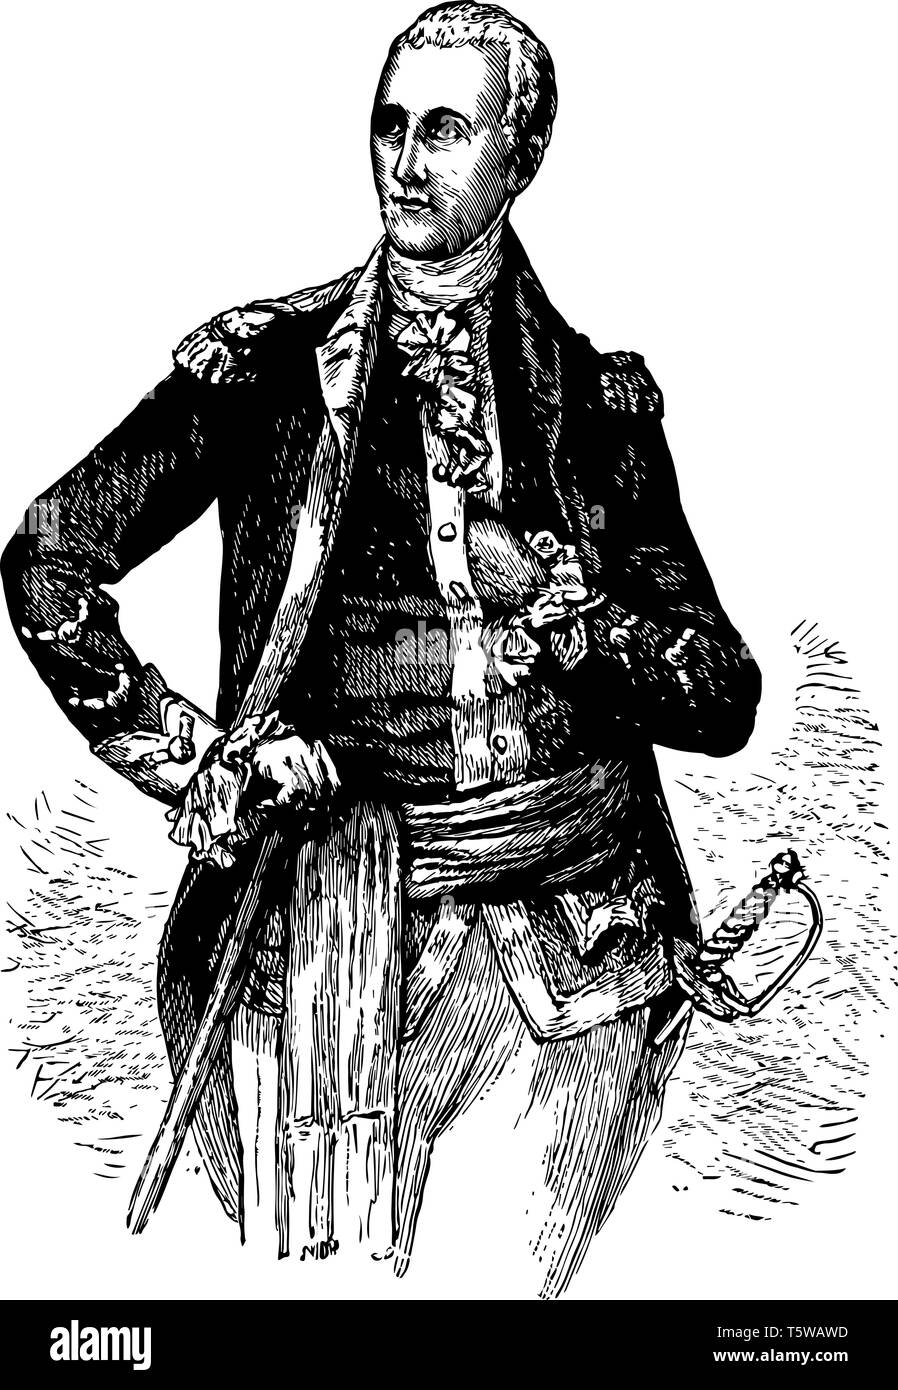 General Lafayette 1757 to 1834 he was a French aristocrat and general who fought in the American revolutionary war vintage line drawing or engraving i - Stock Vector